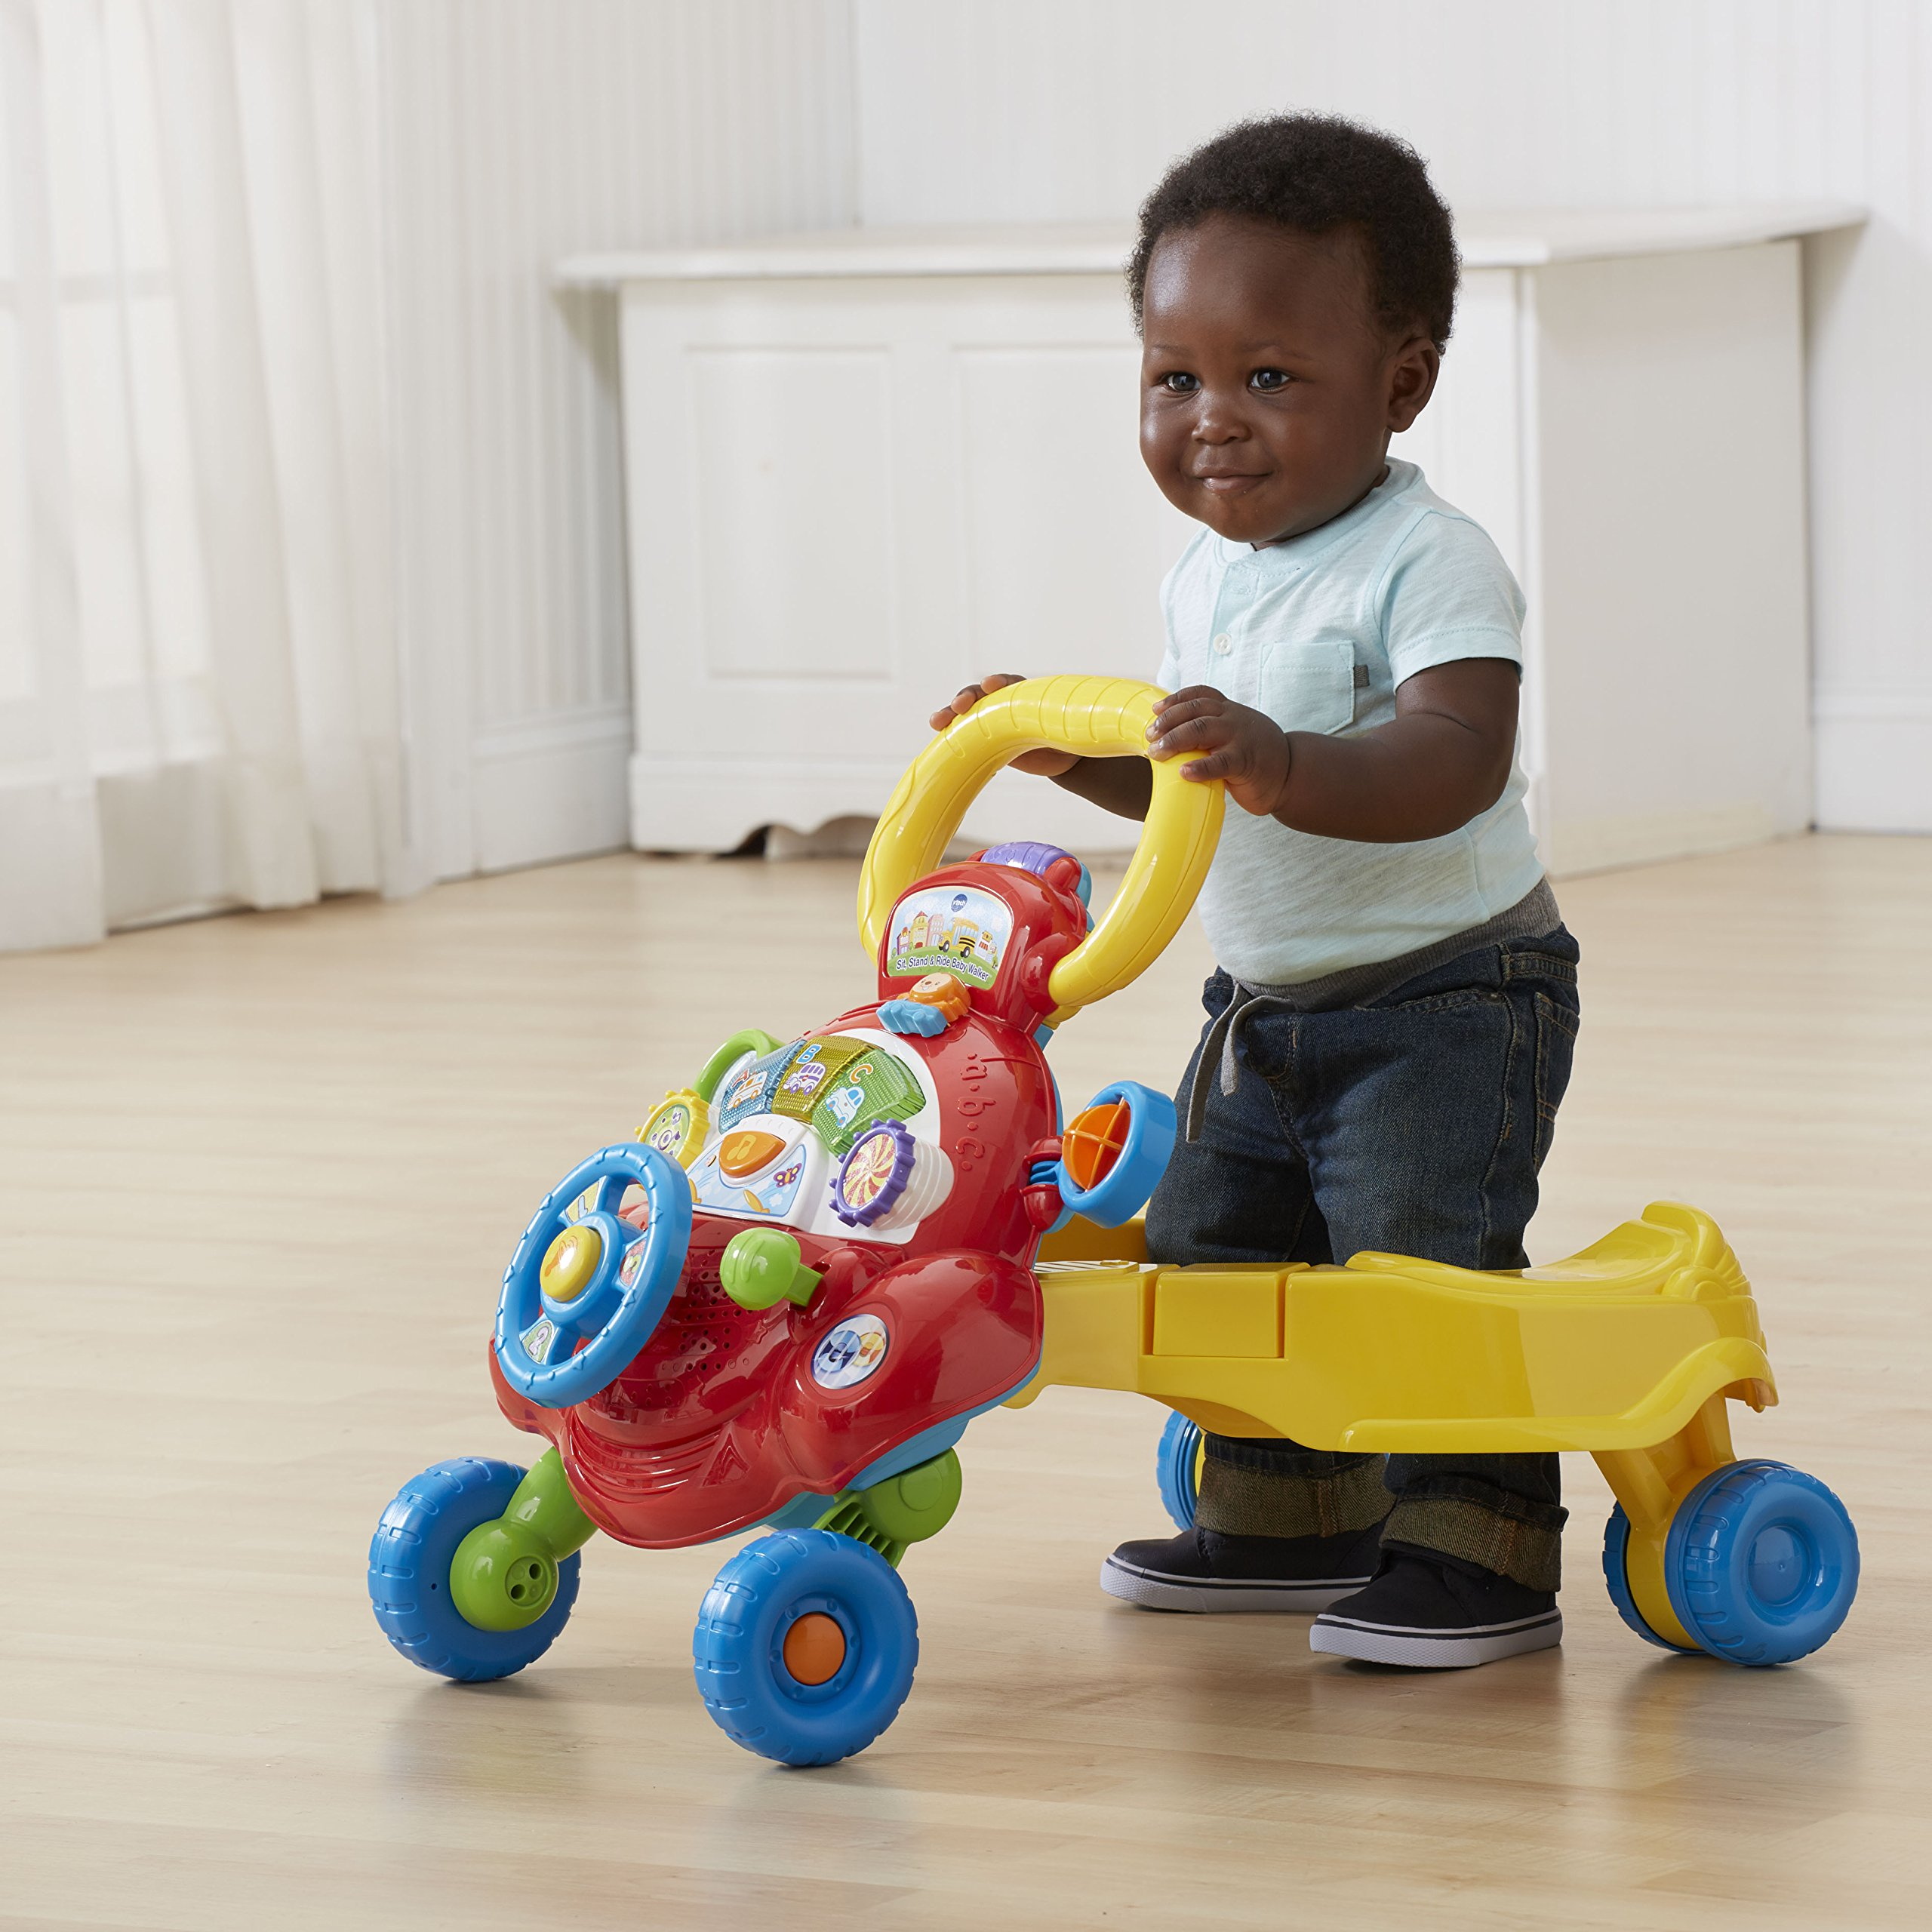 VTech Sit, Stand and Ride Baby Walker (Frustration Free Packaging) (Amazon Exclusive) by VTech (Image #9)